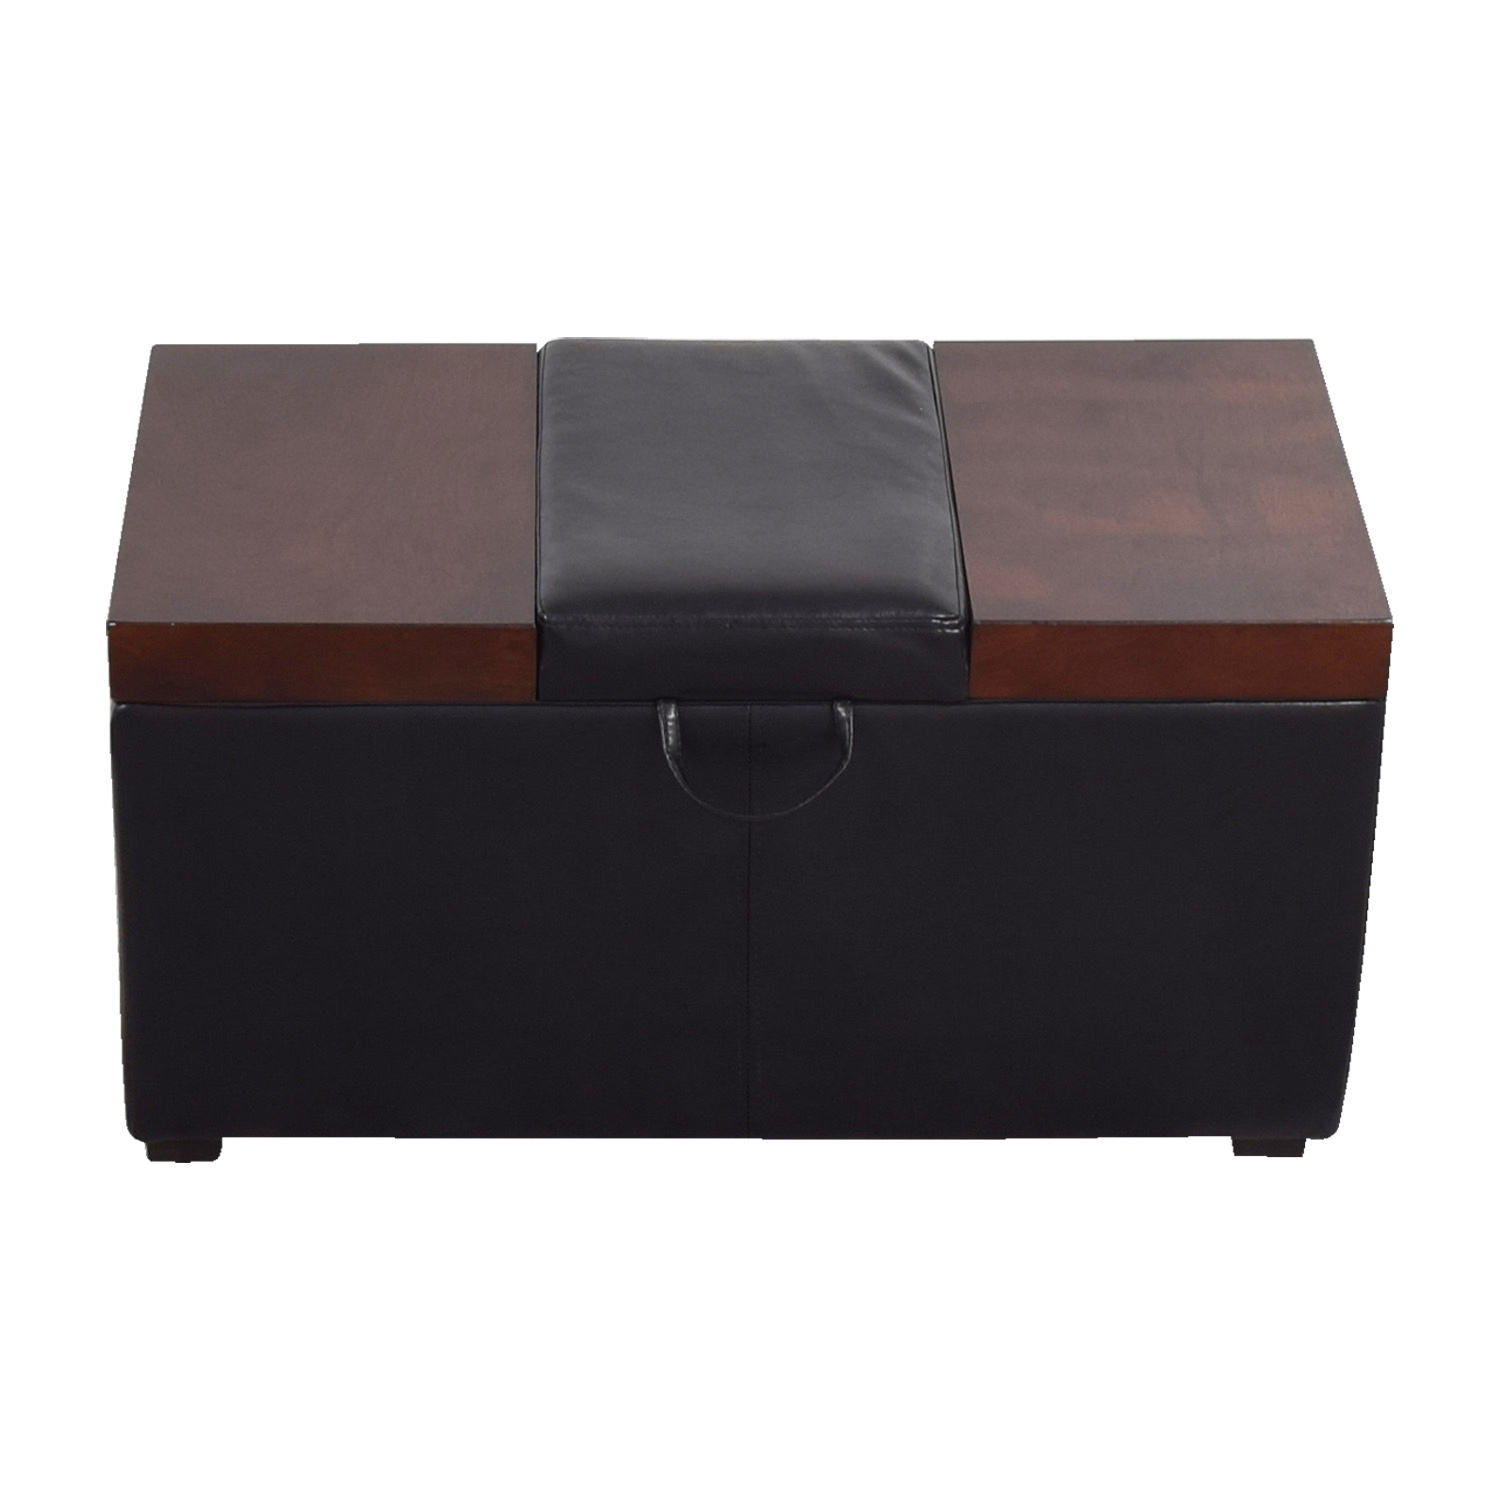 Belham Living Madison Belham Living Madison Lift Top Upholstered Storage Ottoman Ottomans